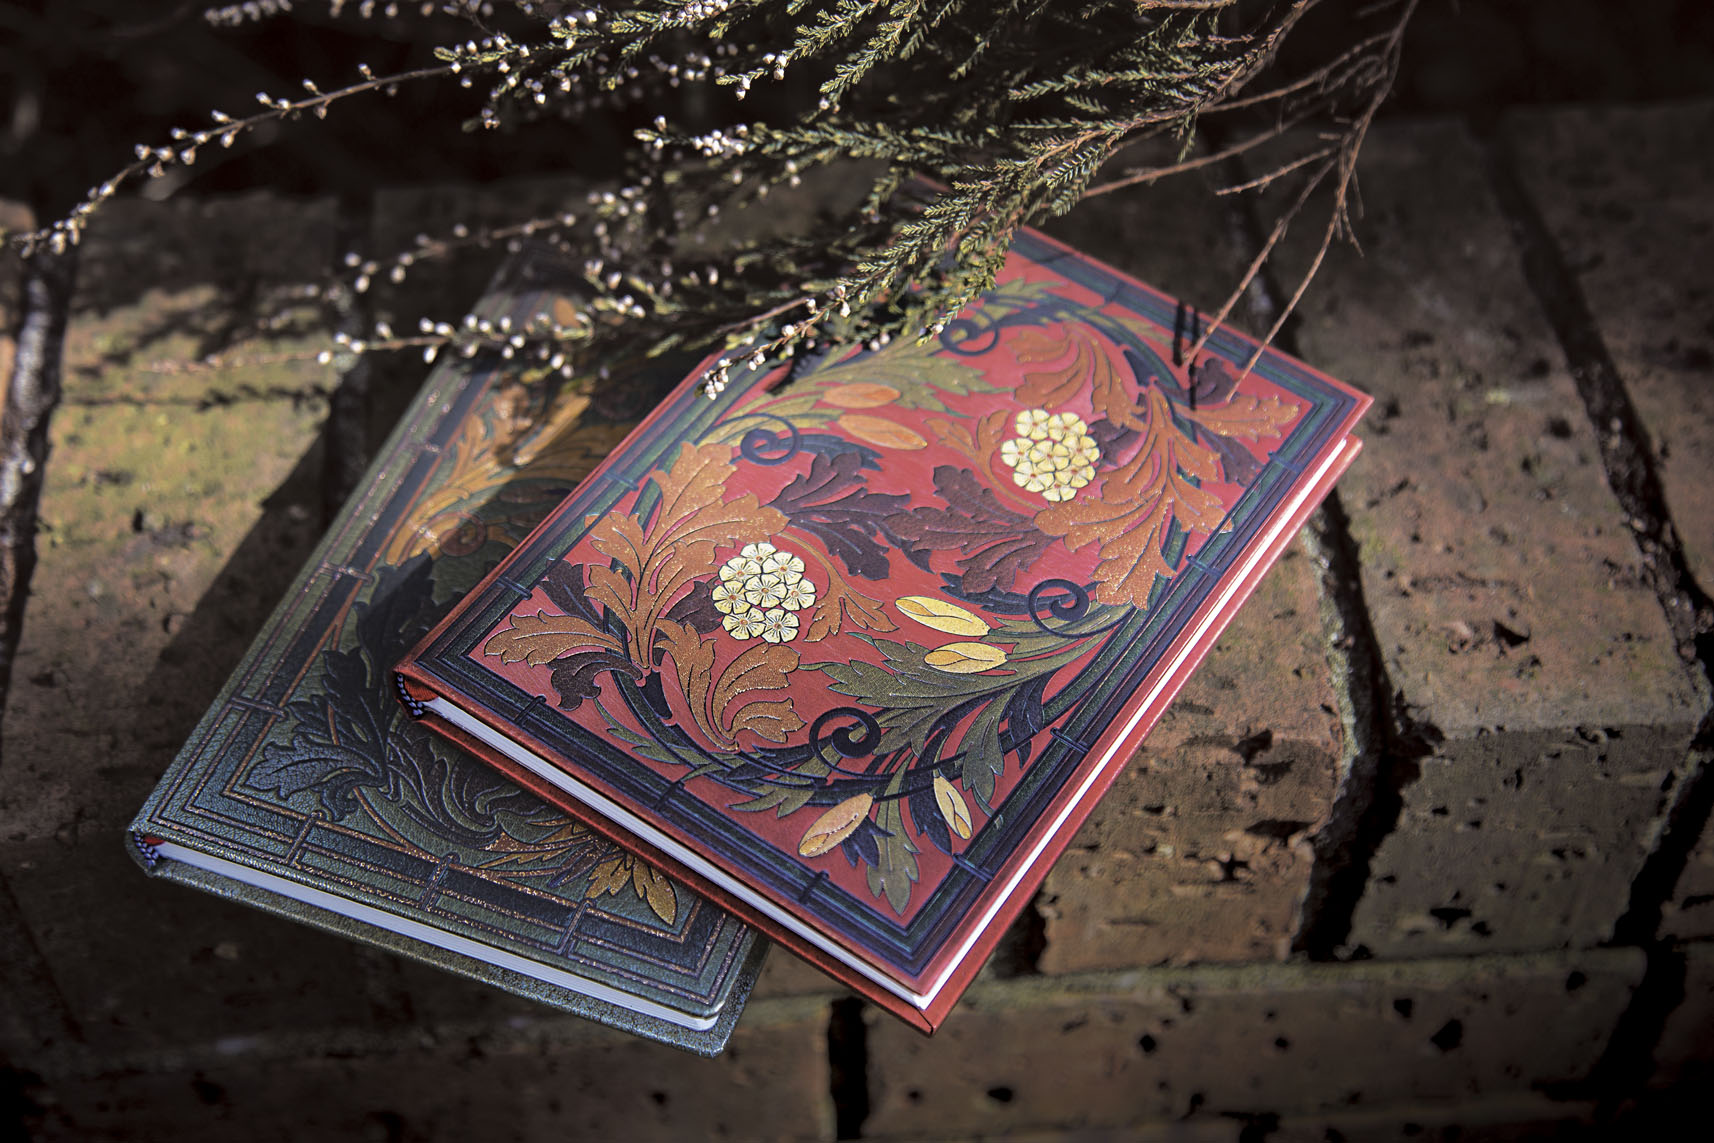 Autumn Symphony Cadenza and Allegro Reproducing two bookbindings designed by Michel